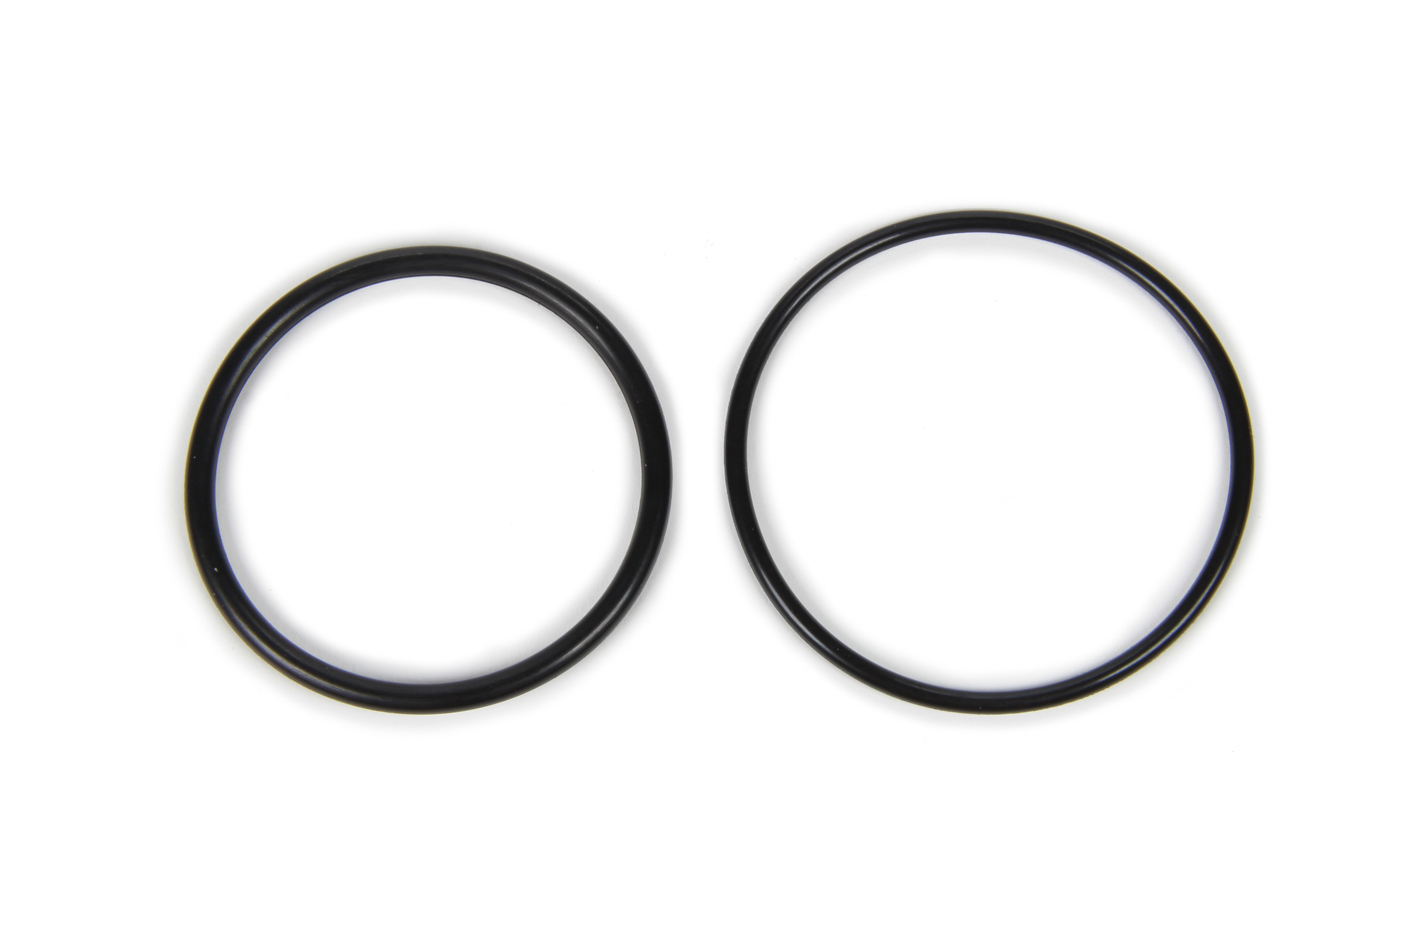 Ti22 Performance 5523 O-Ring, Rubber, TI22 In-Line Fuel Filters, Pair